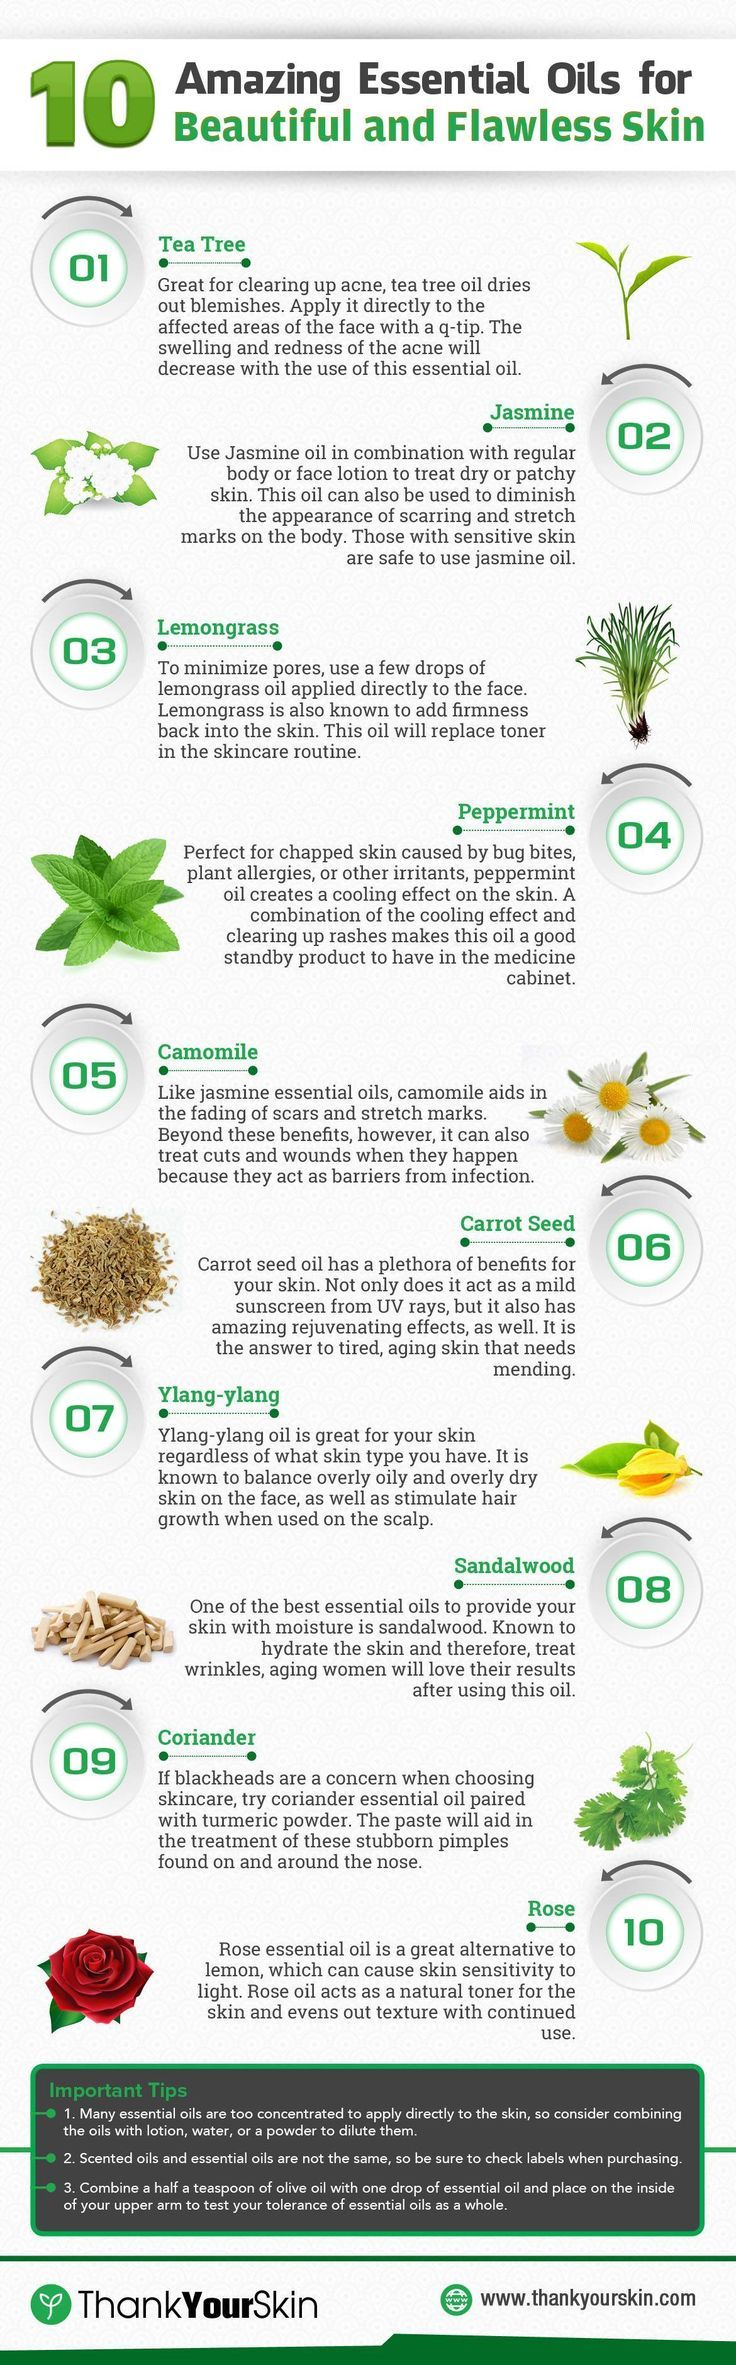 Want to find the best essential oils for skin? Check out the top 10 recommendations selected by our experts.